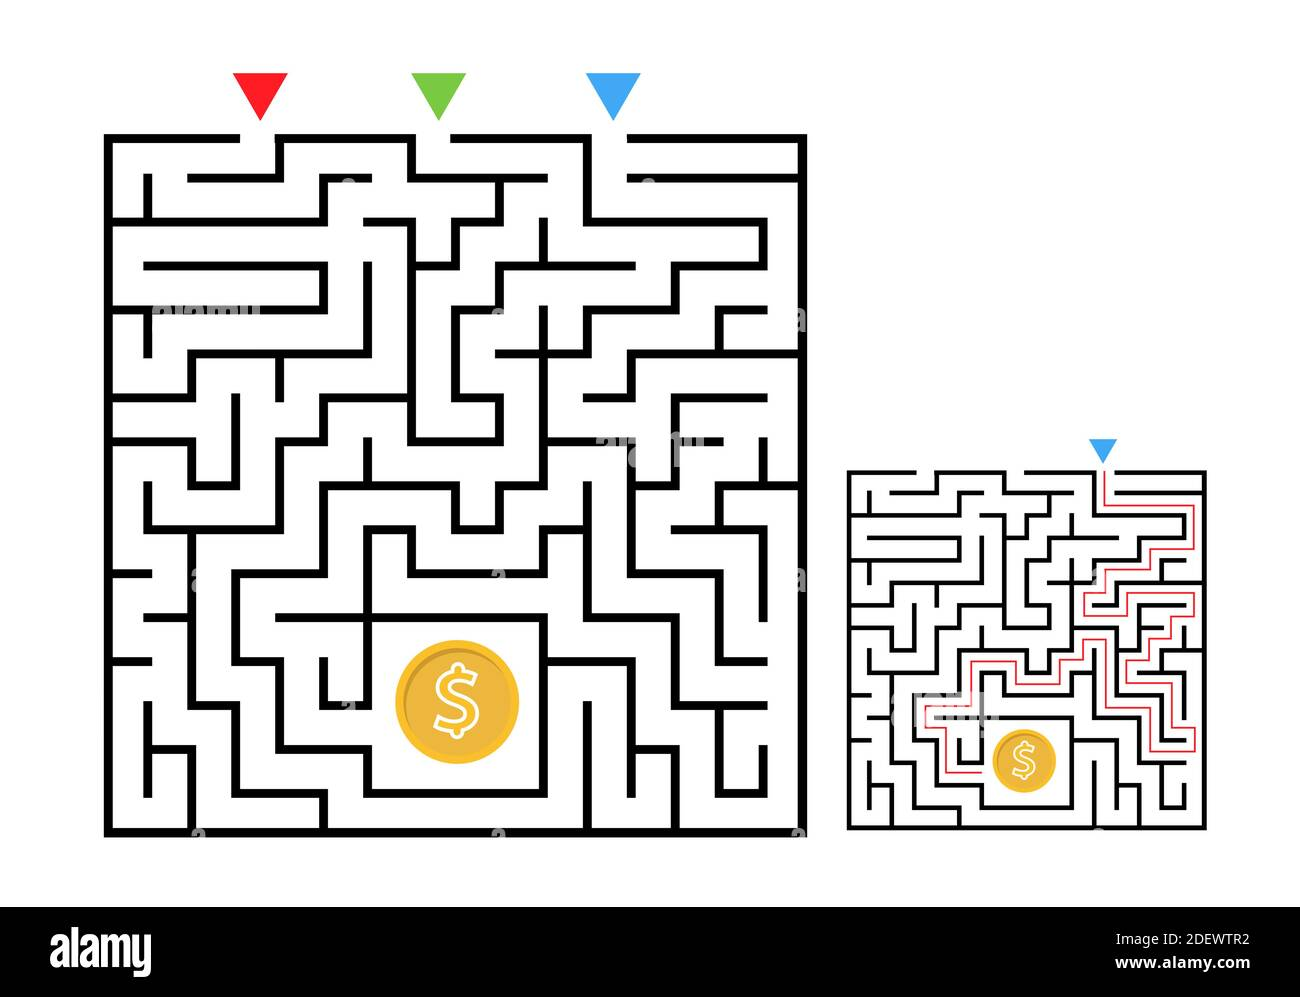 Page 3 Path Maze Activity Kids High Resolution Stock Photography And Images Alamy [ 997 x 1300 Pixel ]